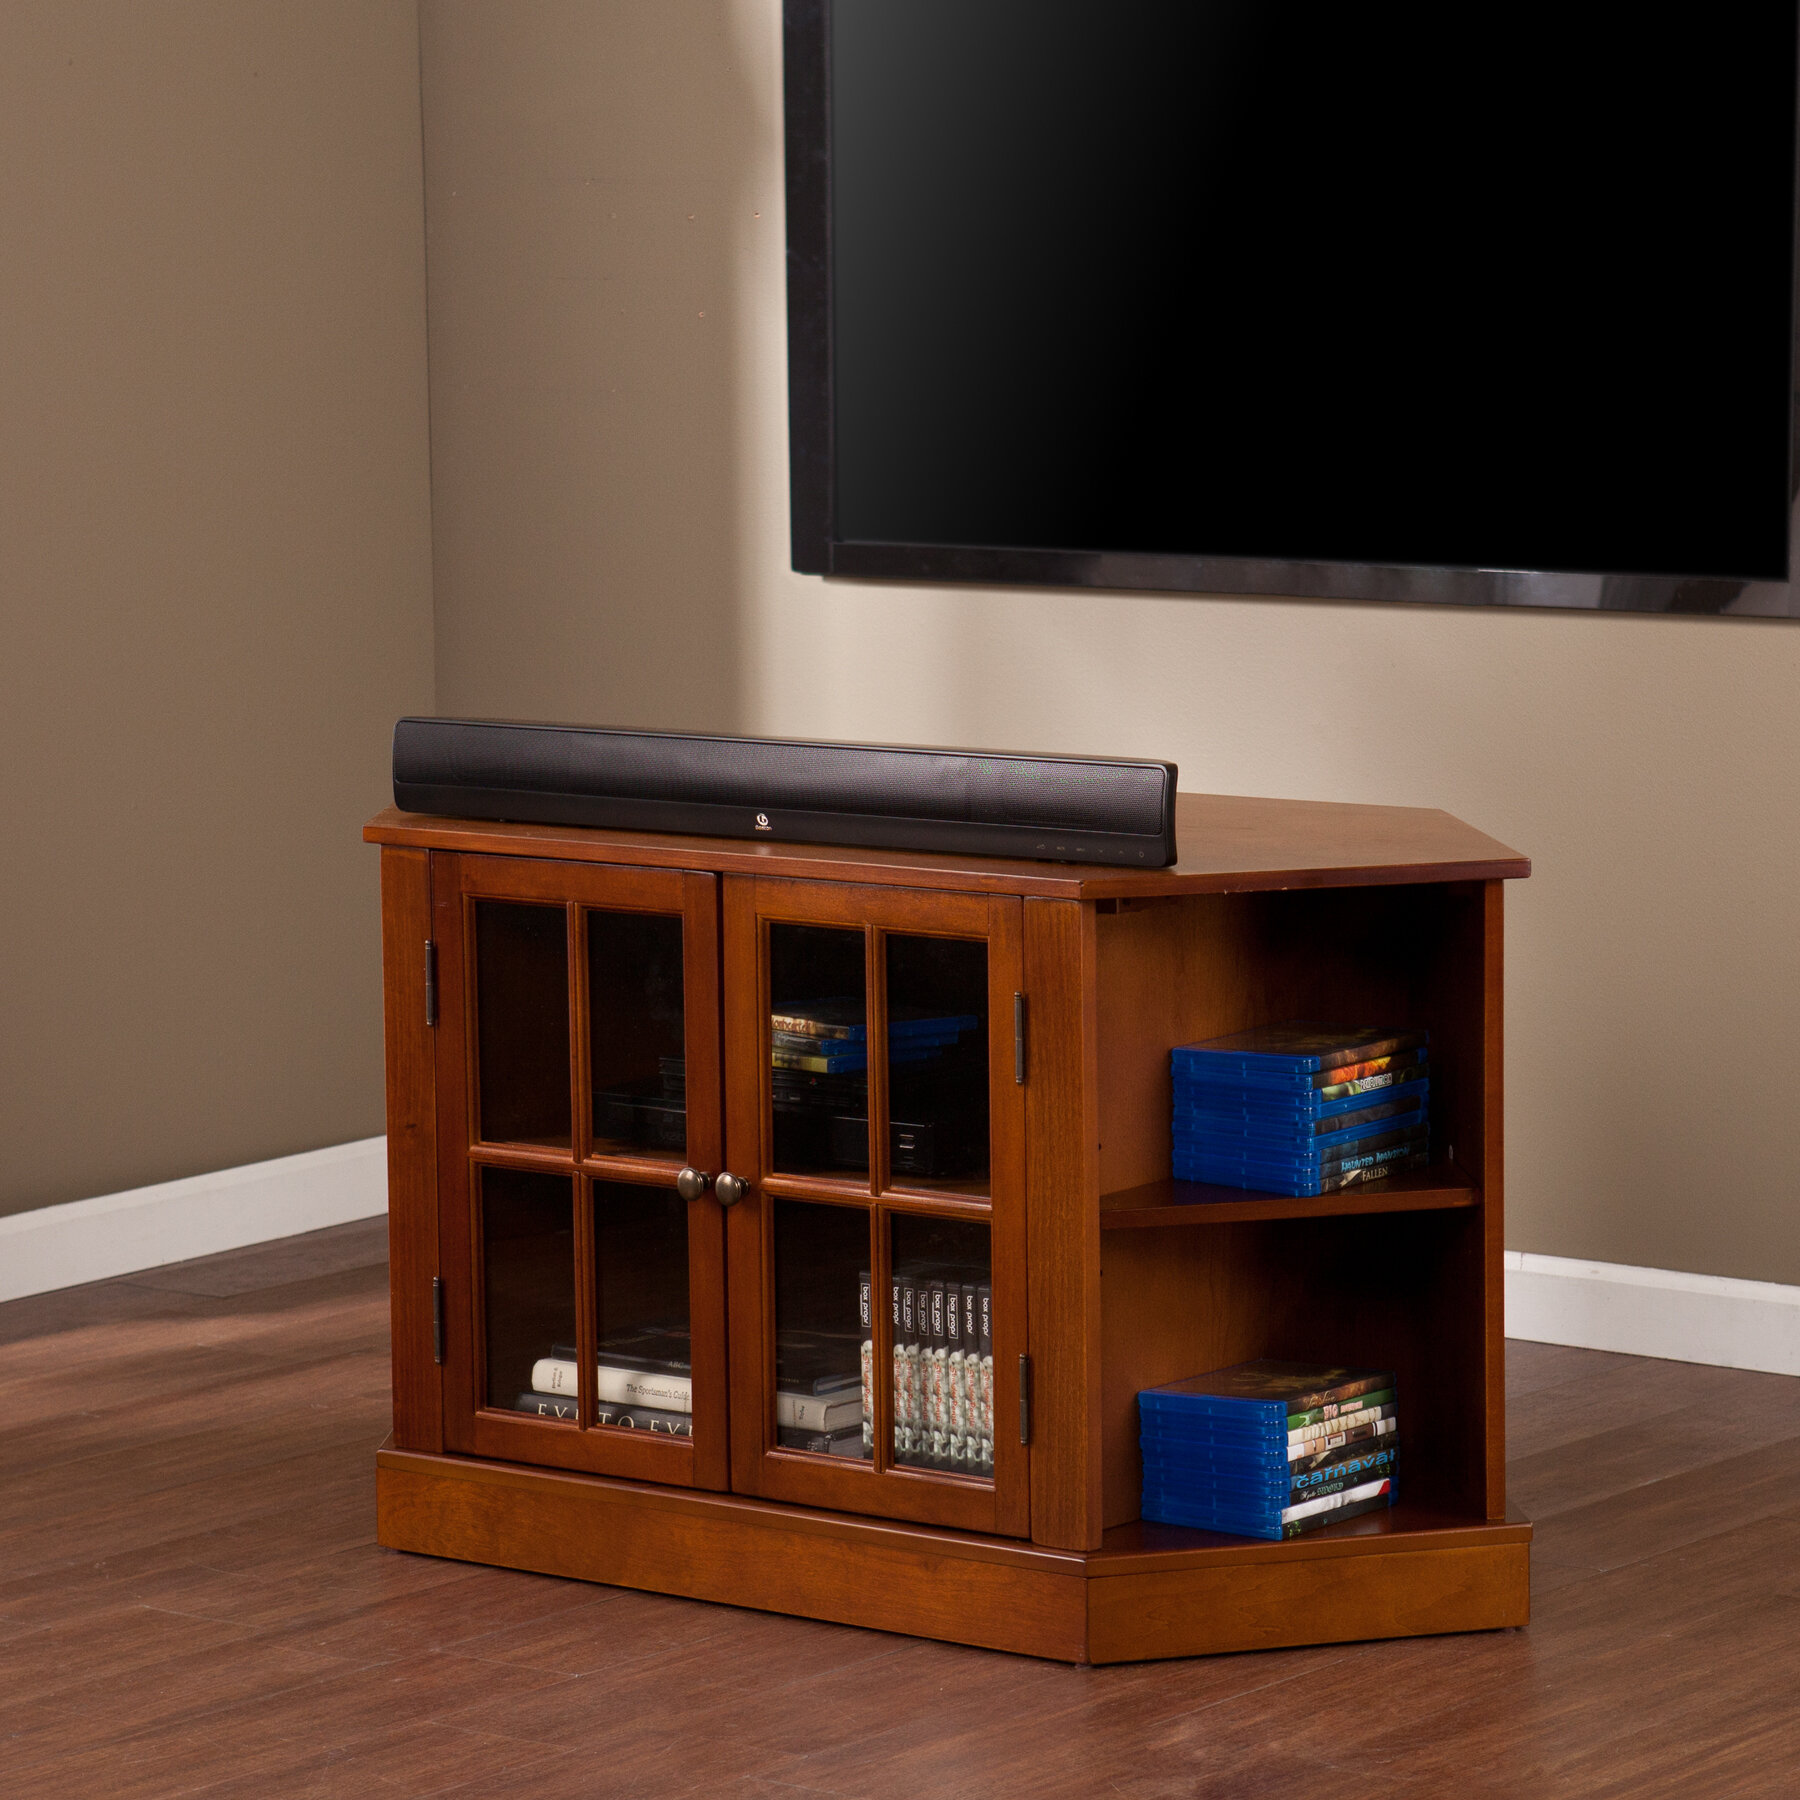 Darby Home Co Lasalle Corner Tv Stand For Tvs Up To 43 Reviews